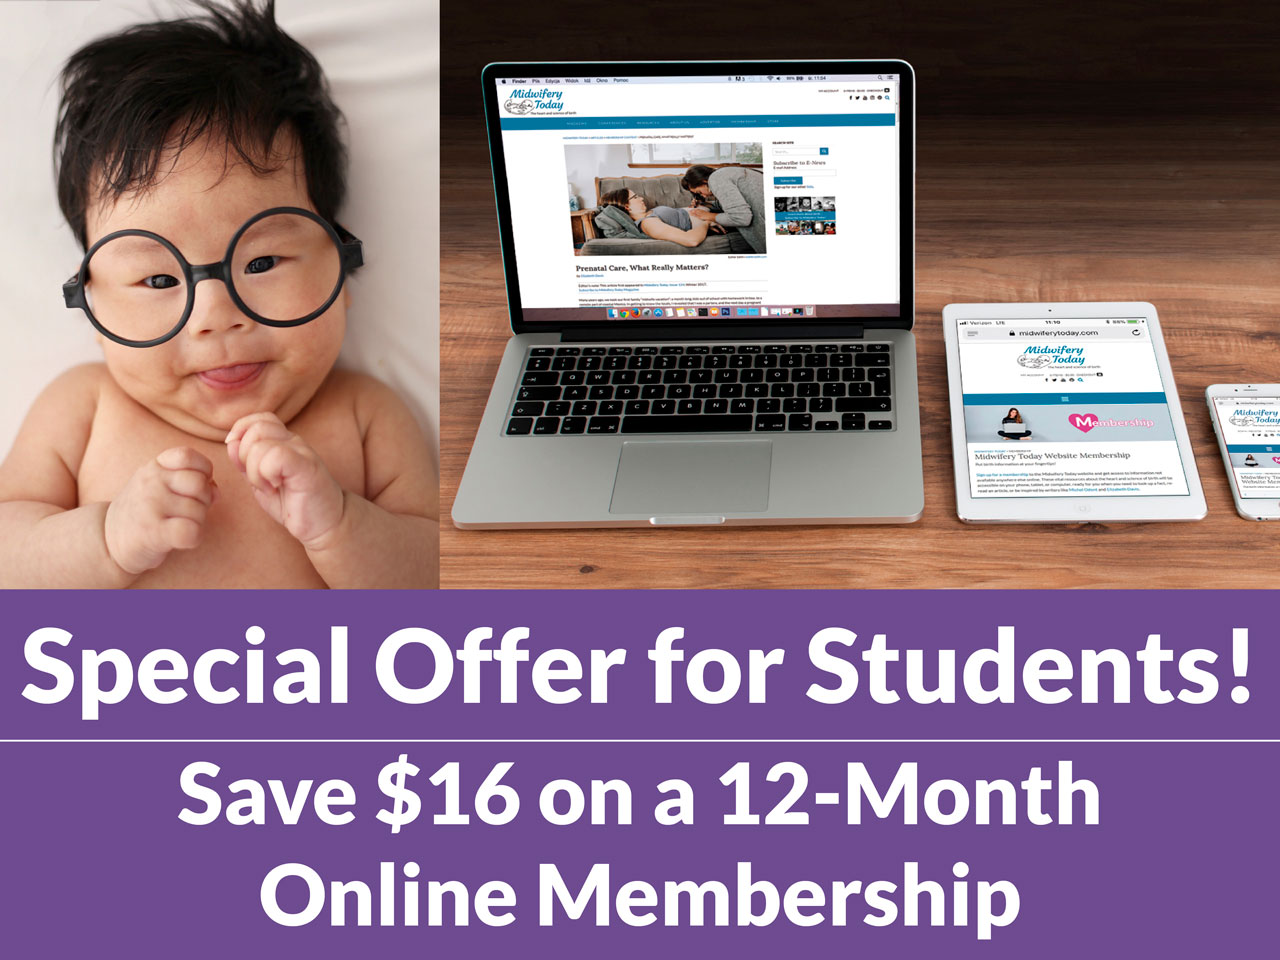 Student Special Save $16 on a 12-Month Online Membership